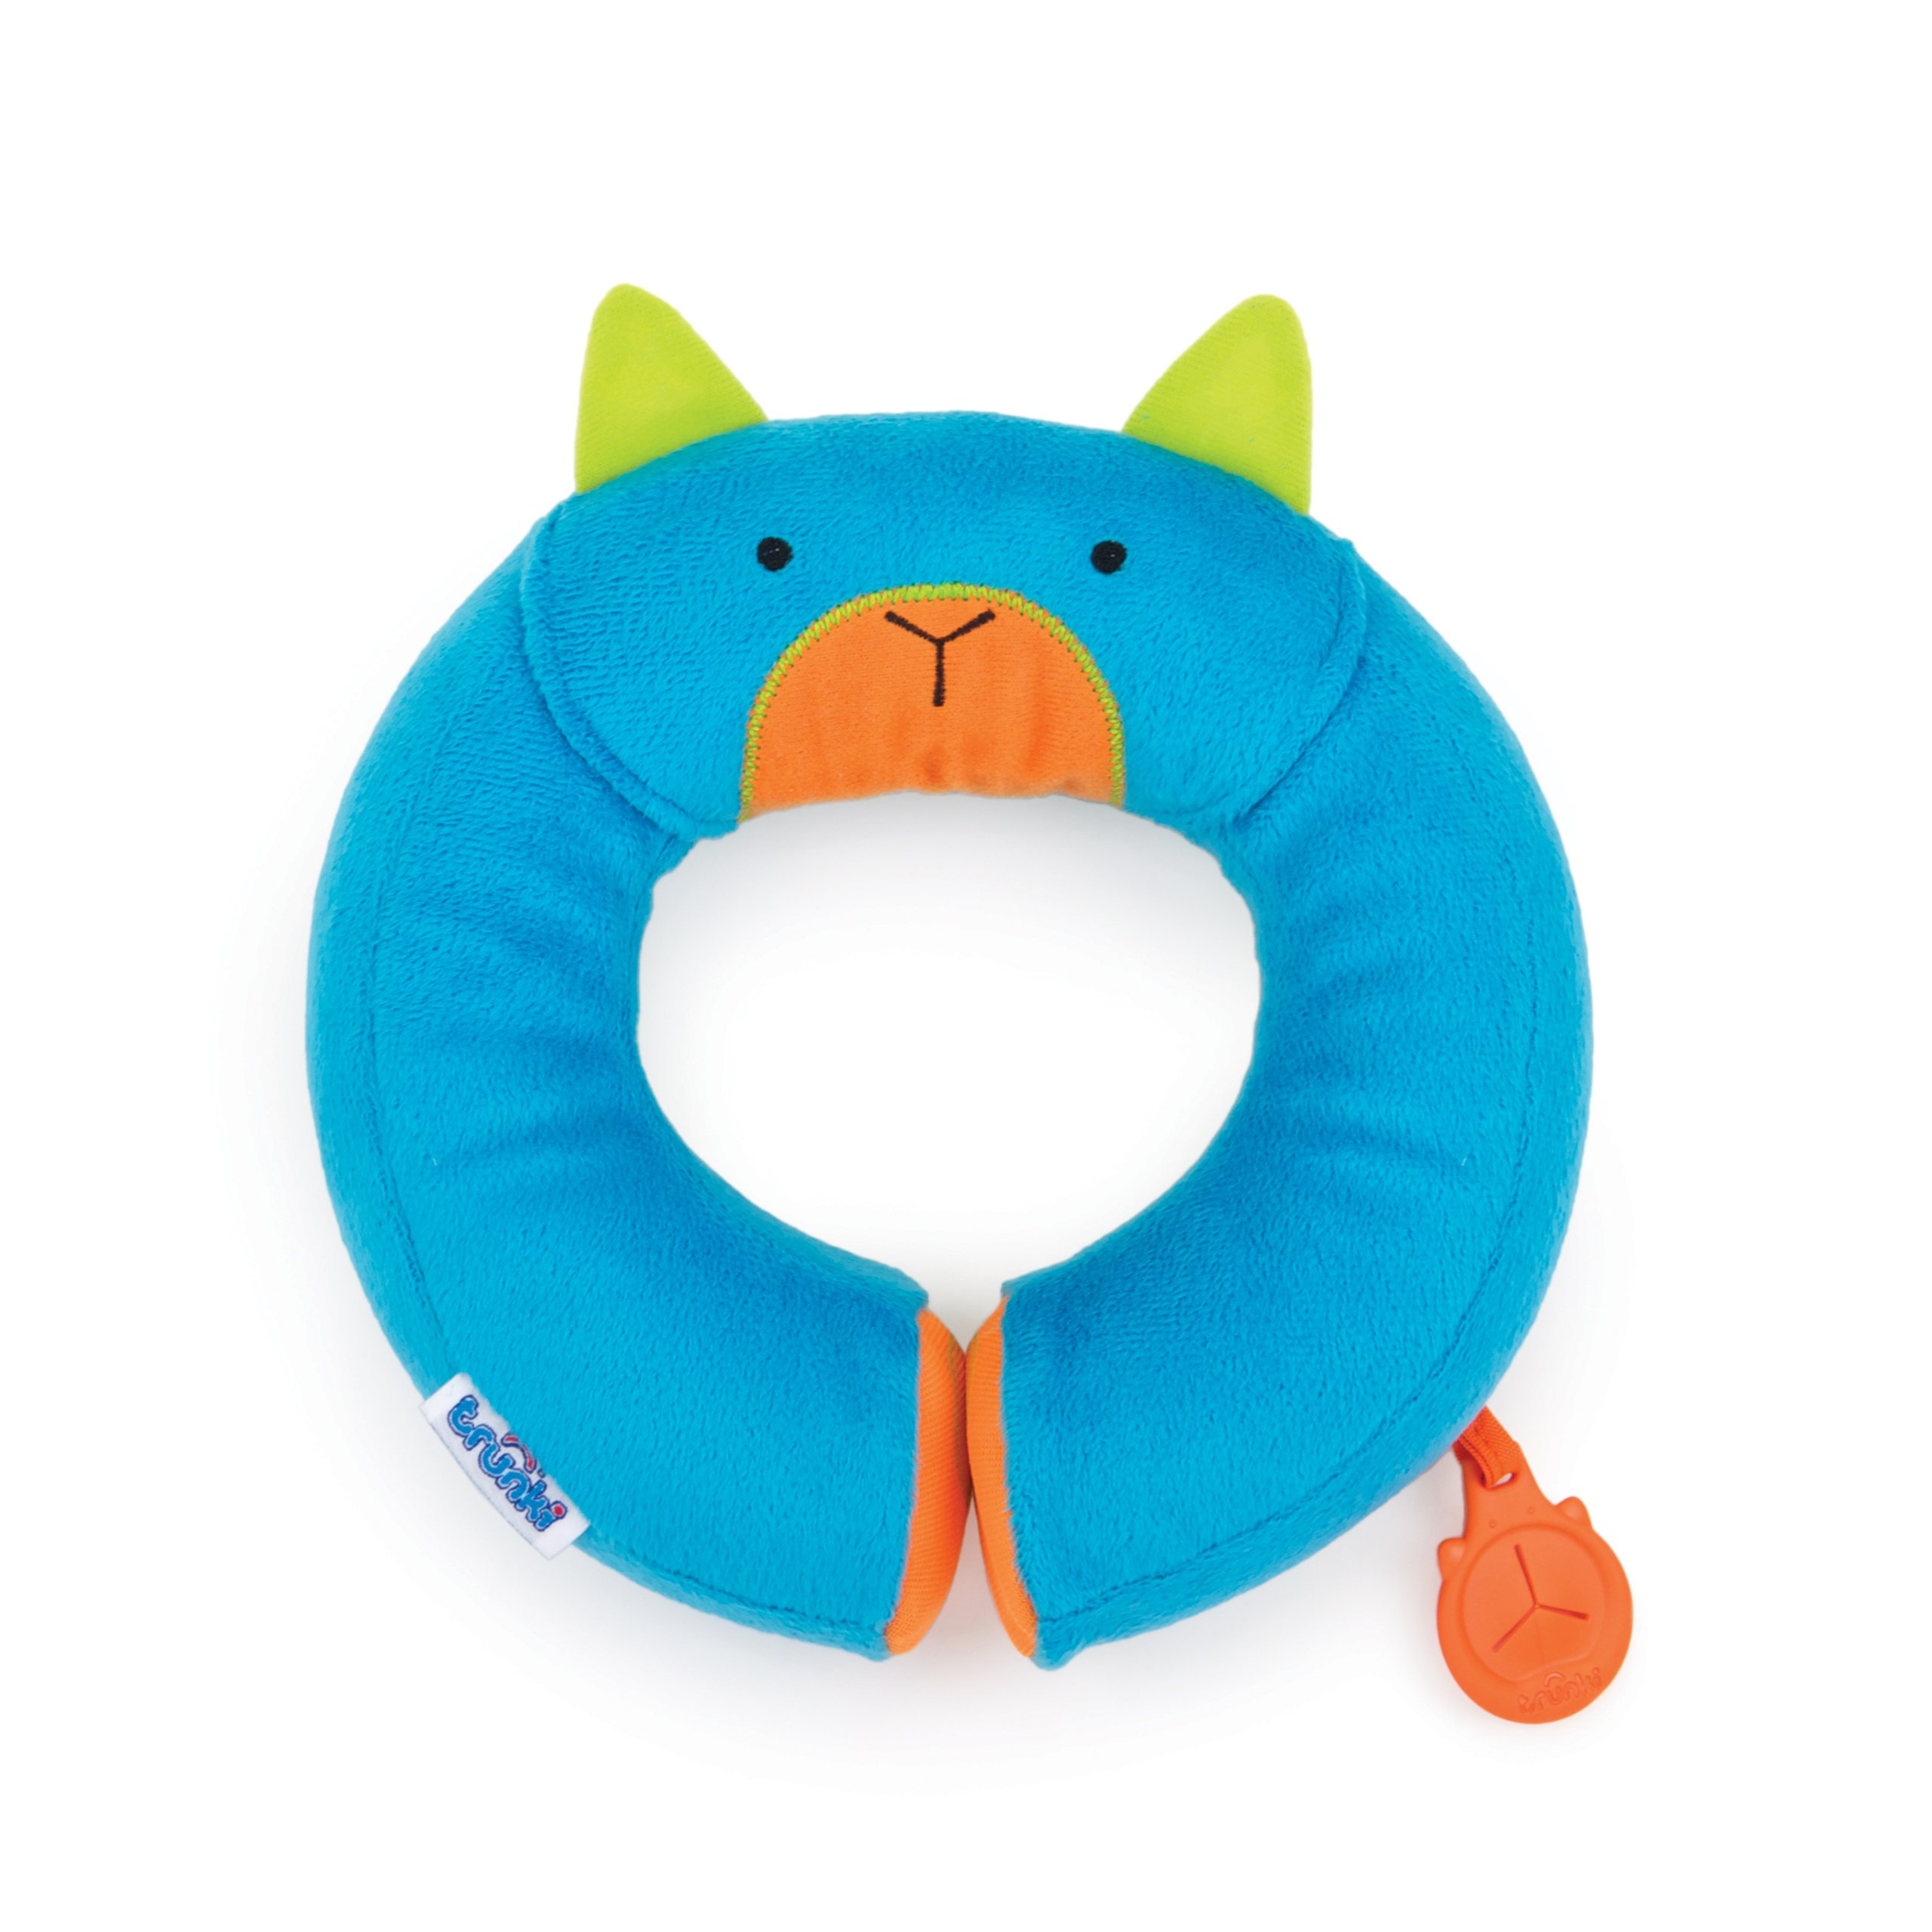 Trunki Kid's Travel Neck Pillow with Magnetic Child's Chin Support - Yondi Small Bert (Blue) by Trunki (Image #1)